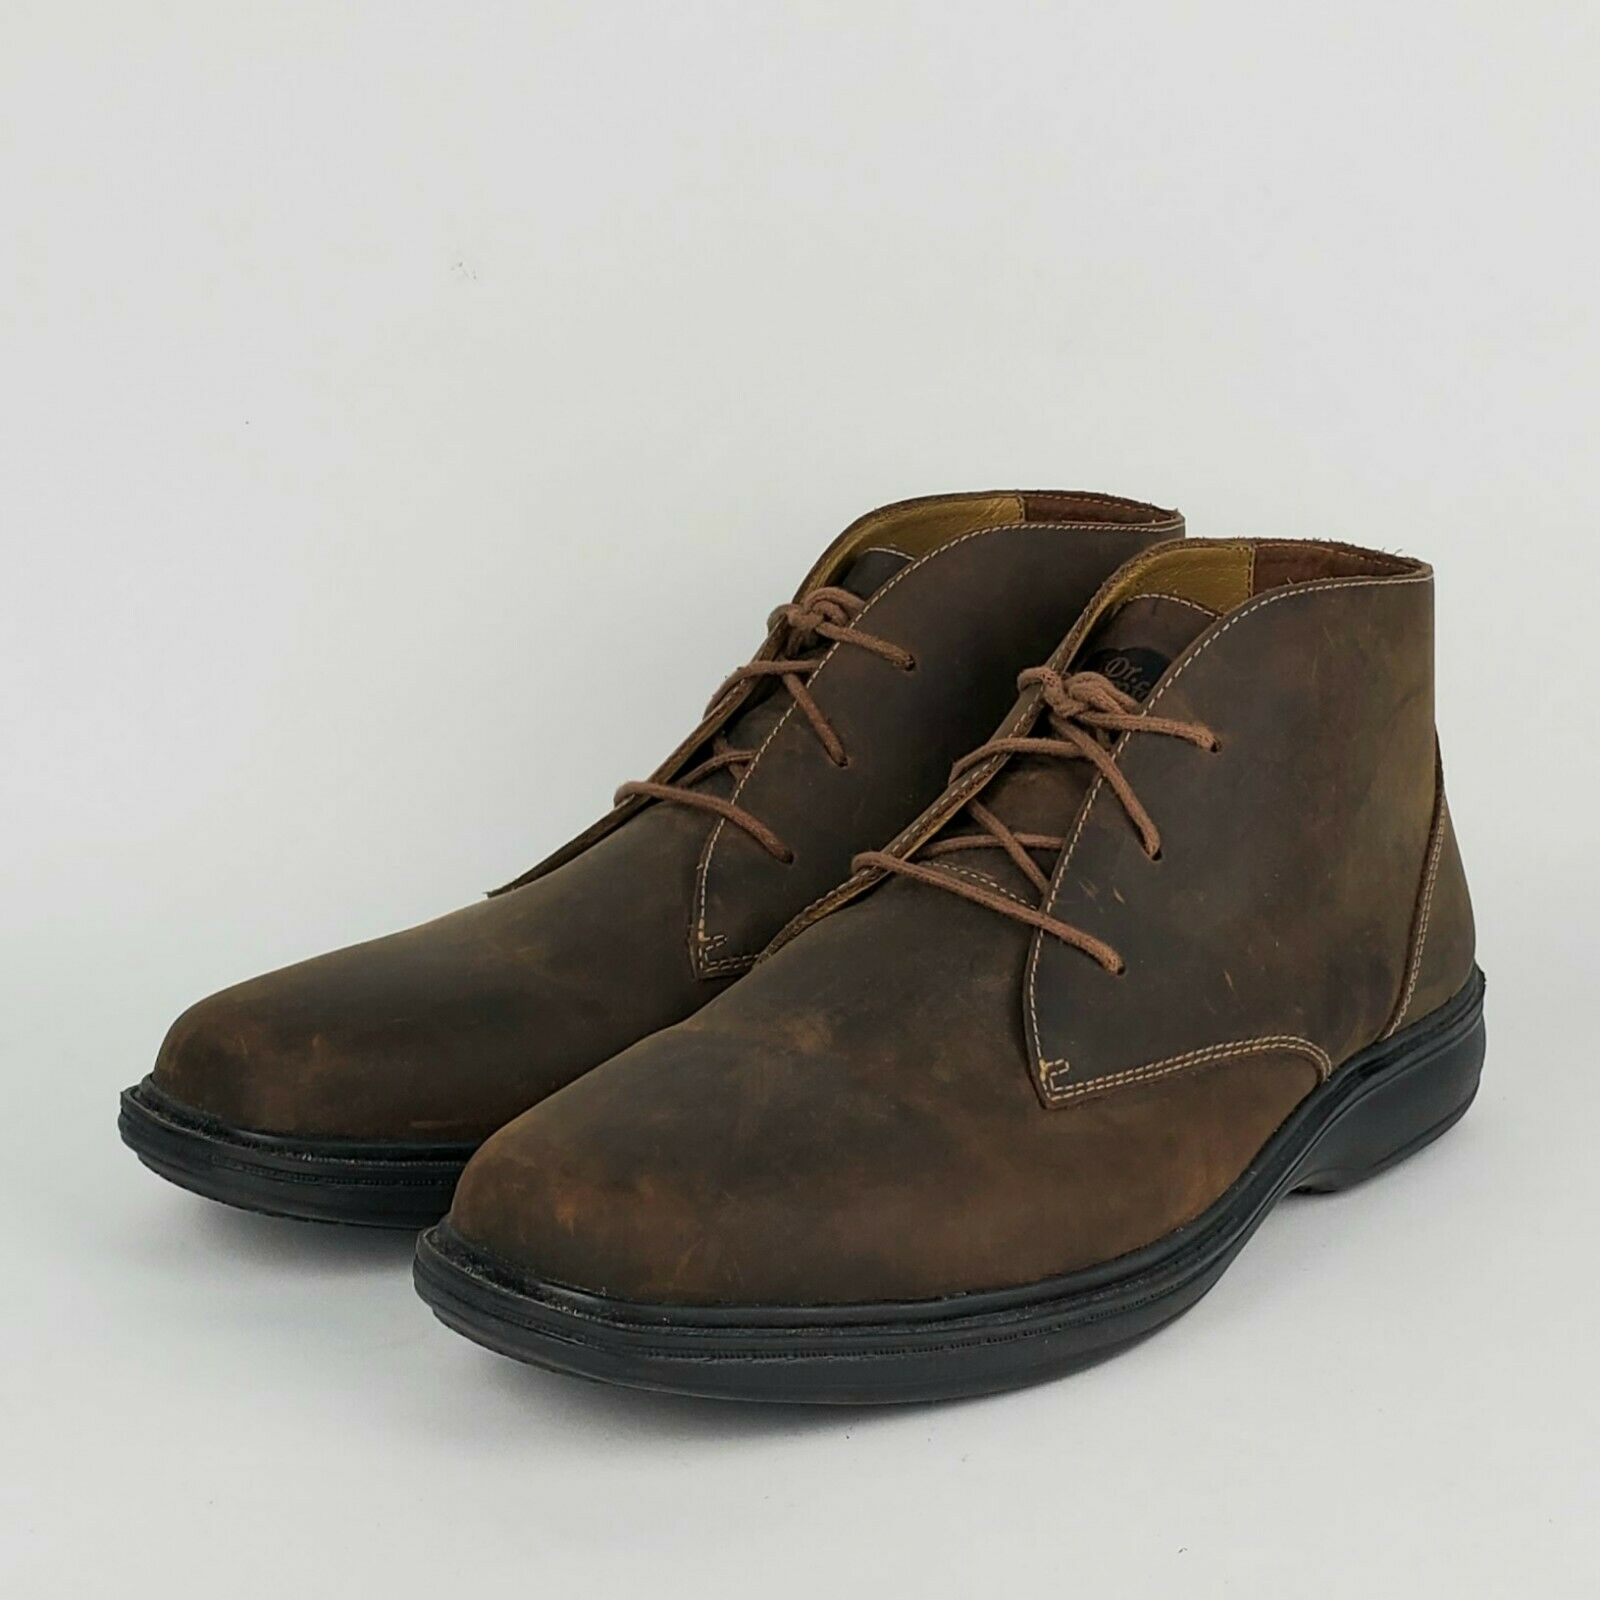 Dr. Comfort Mens Ankle Boots Chukka Therapeutic Diabetic Leather Brown Sz10.5 XW